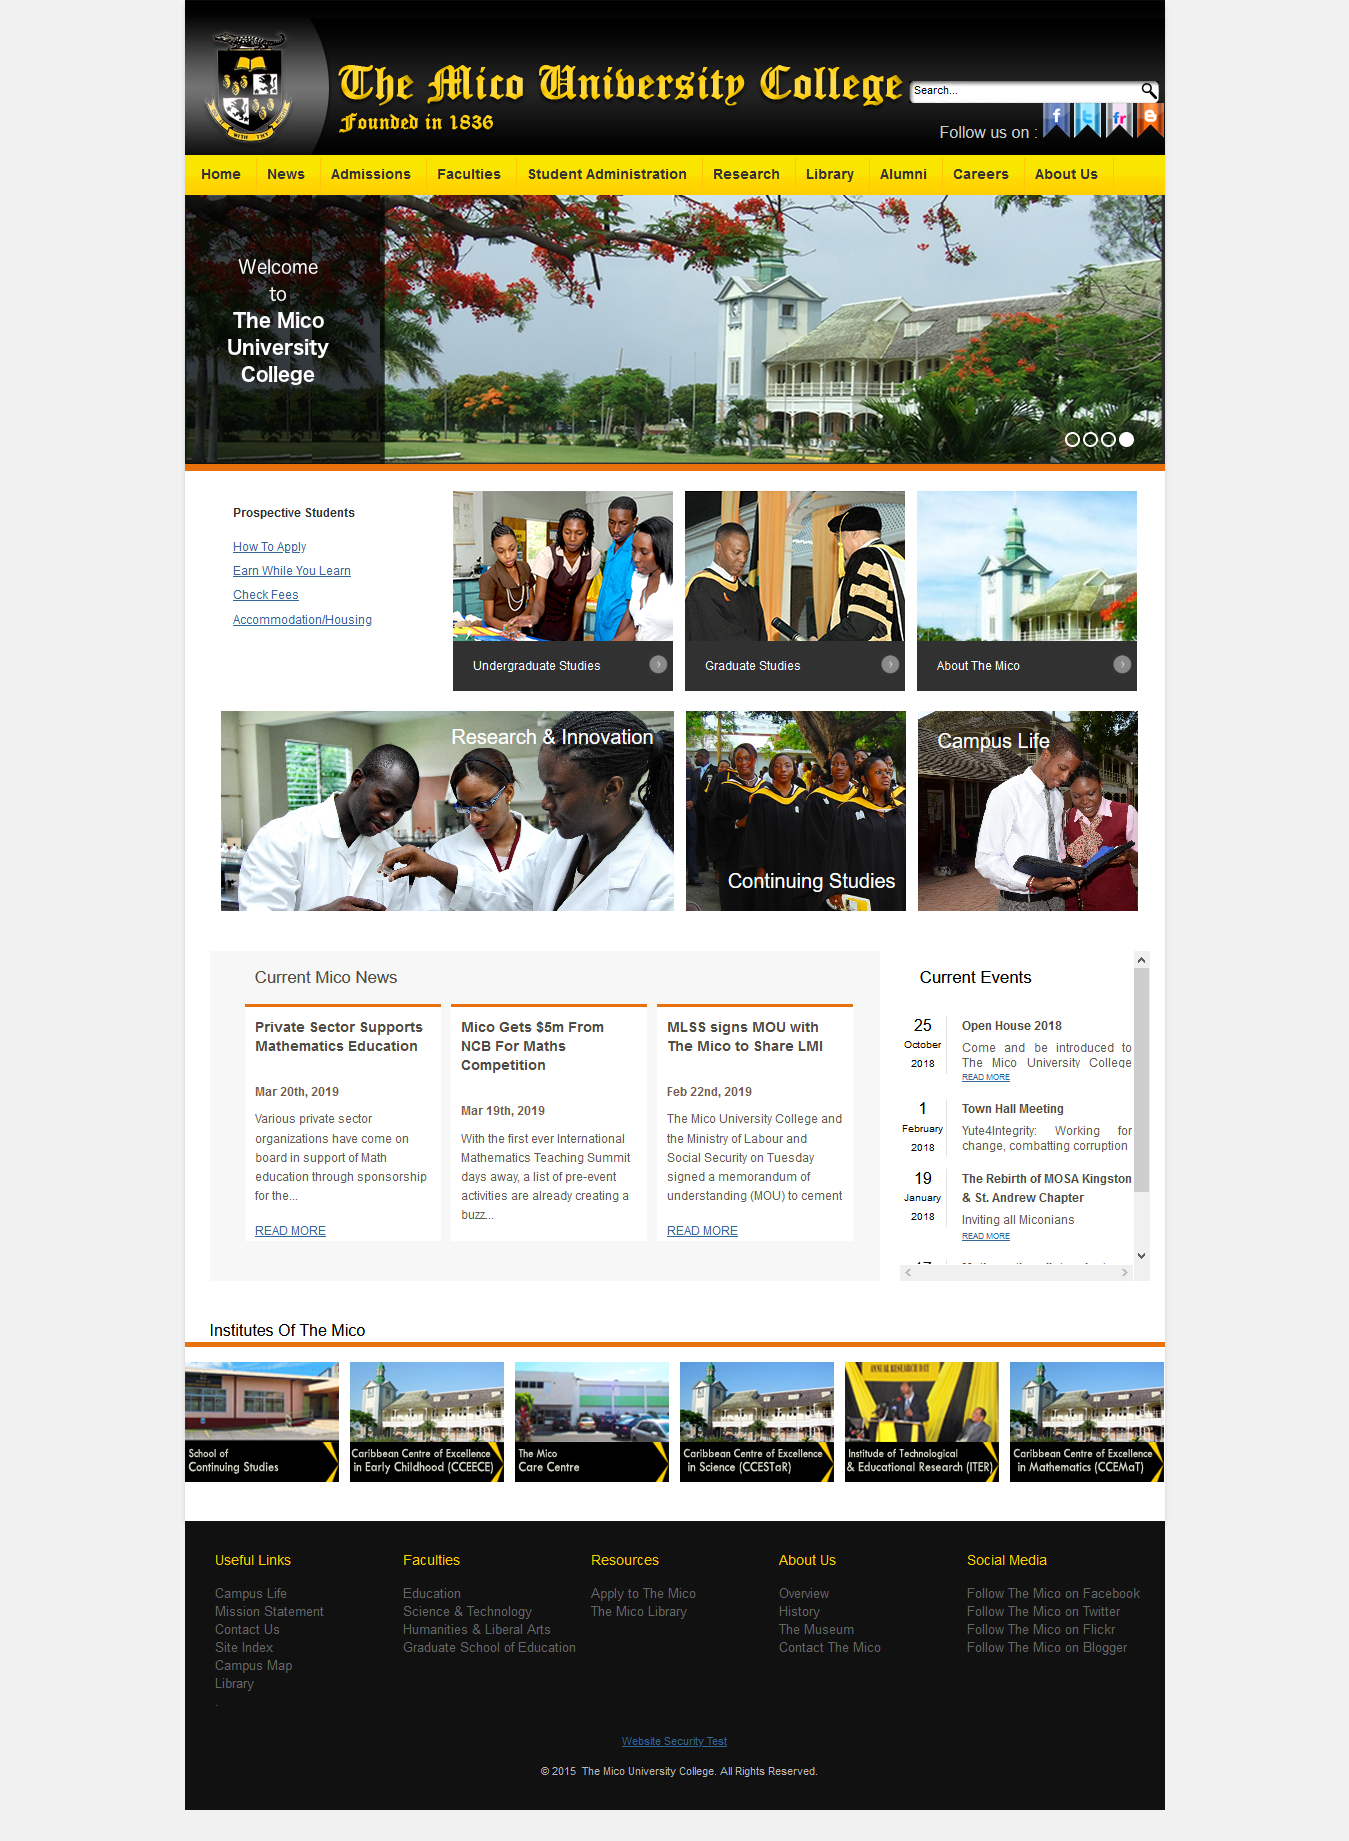 The Mico Website Redesign